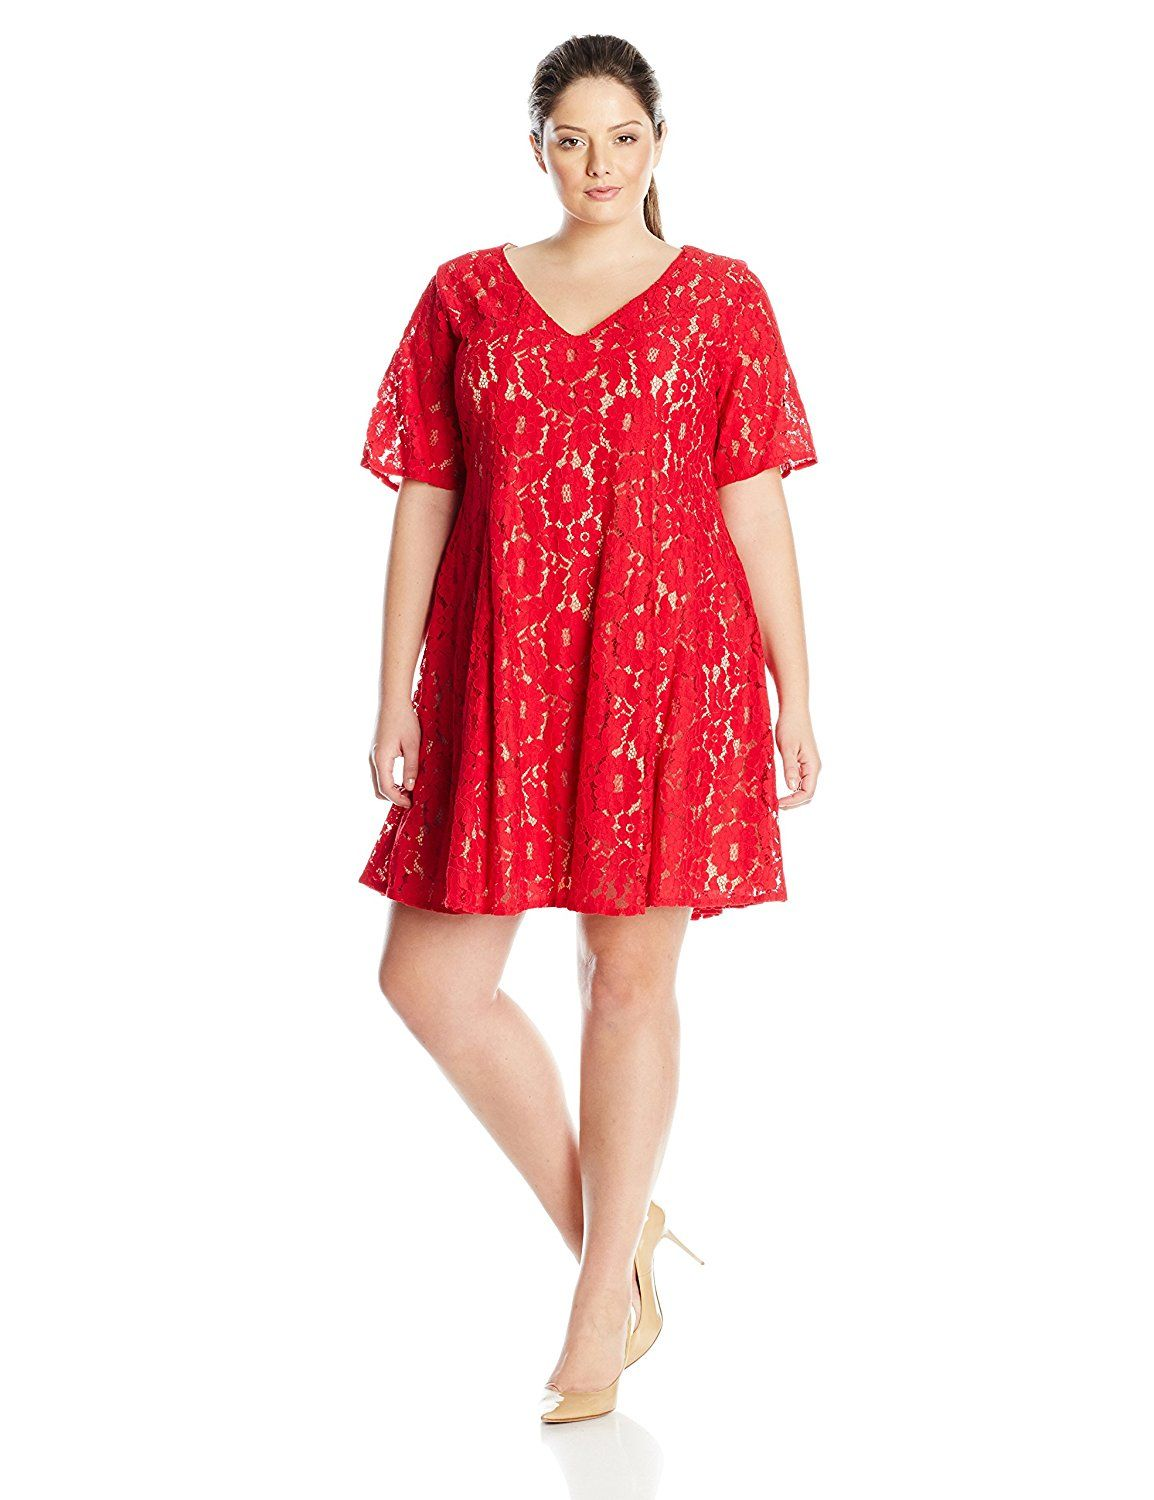 Red lace dress plus size  Julian Taylor Womenus PlusSize Trapeze Lace Dress Elbow Sleeve